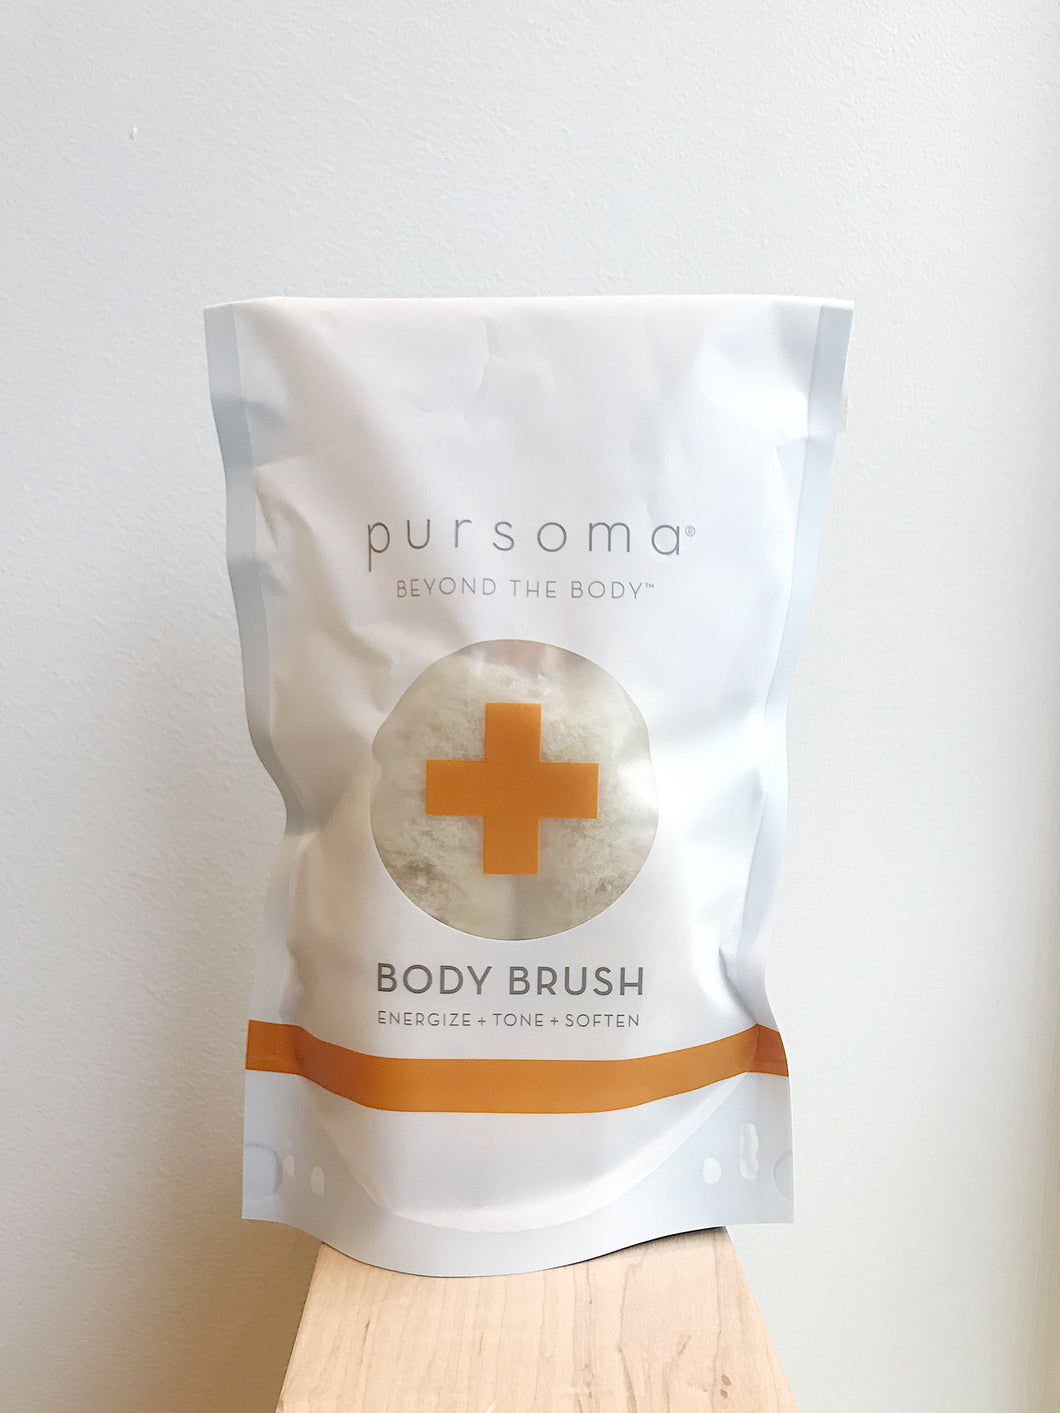 Pursoma Body Brush